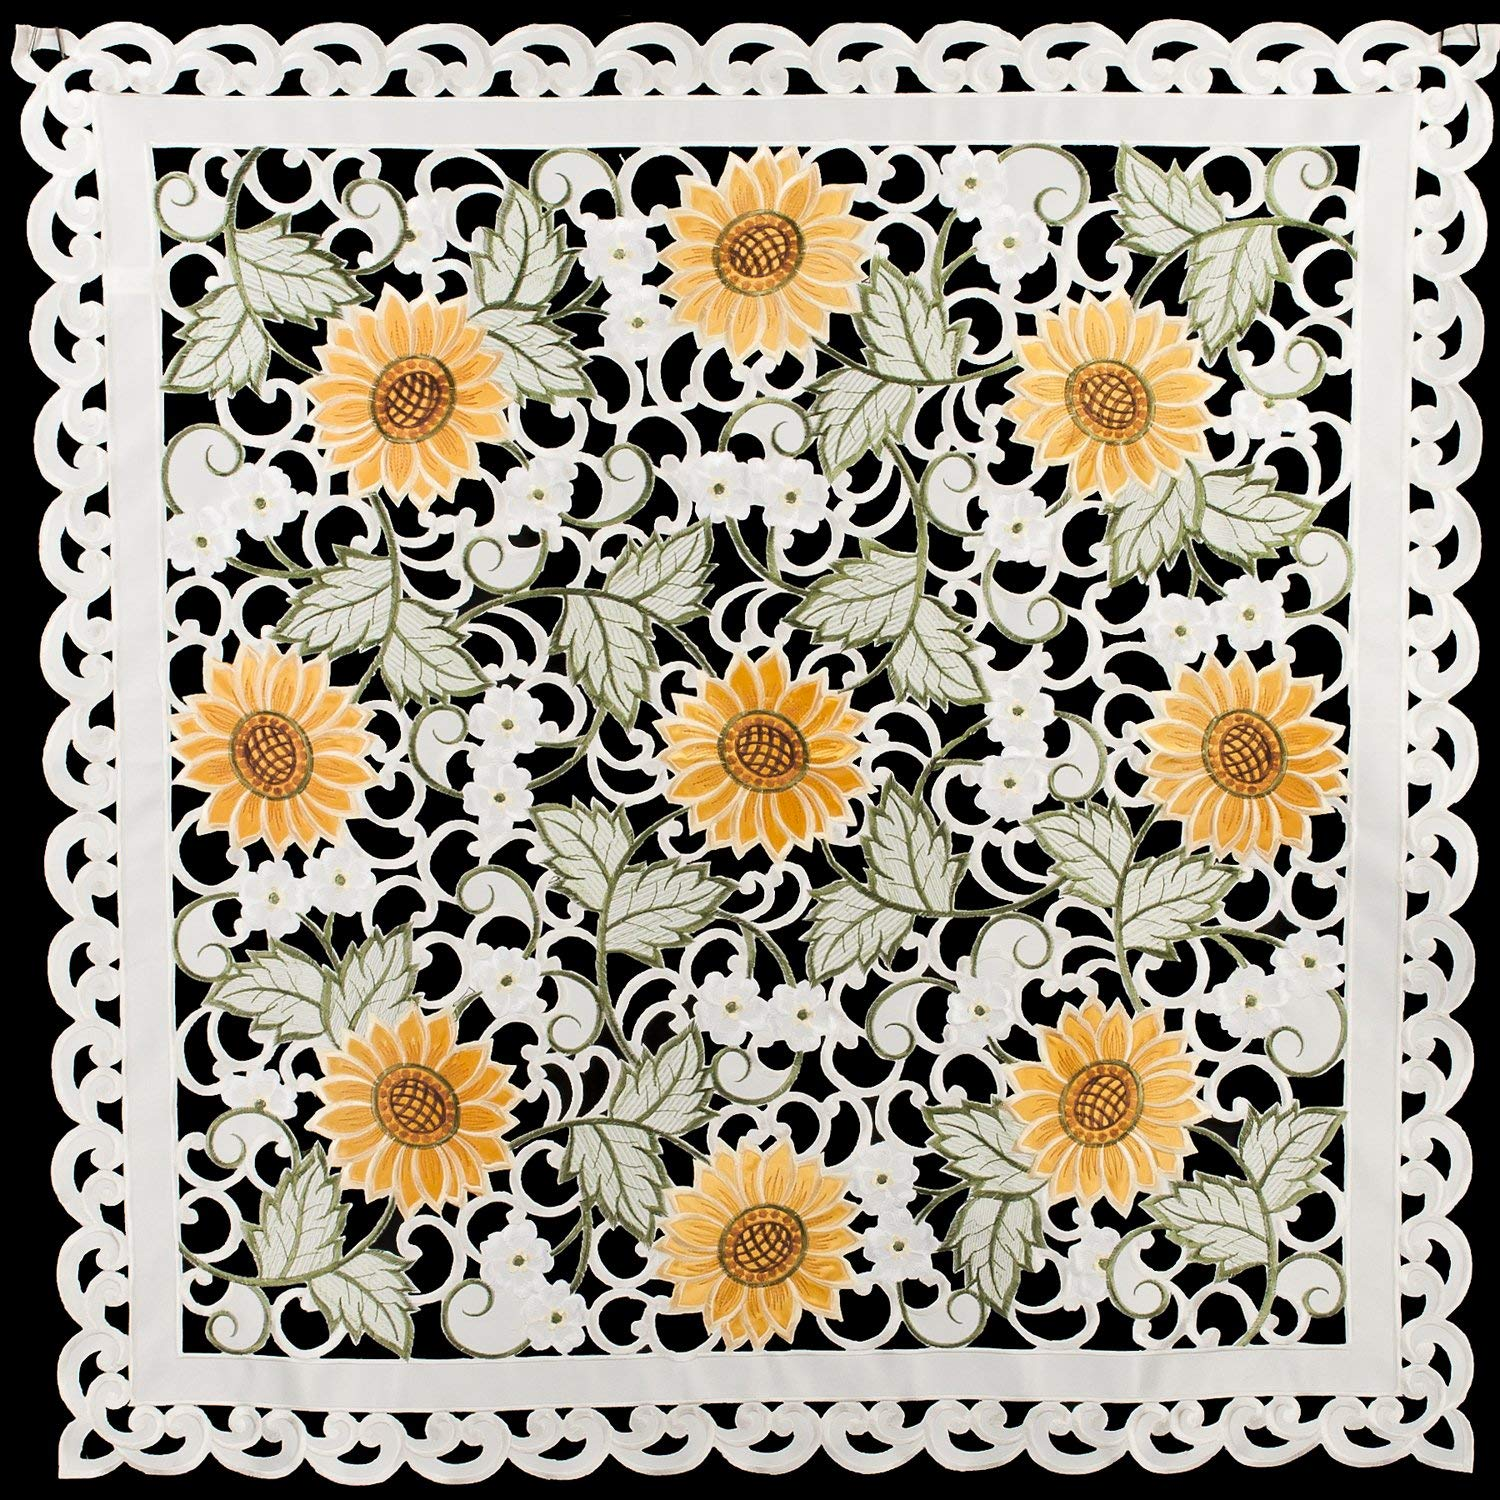 "Linens, Art and Things Embroidered Table Topper Doily Table Centerpiece Small Tablecloth Open Weave Cut Work Sunflower and White Daisy on Ivory Approx 33"" x 33"""